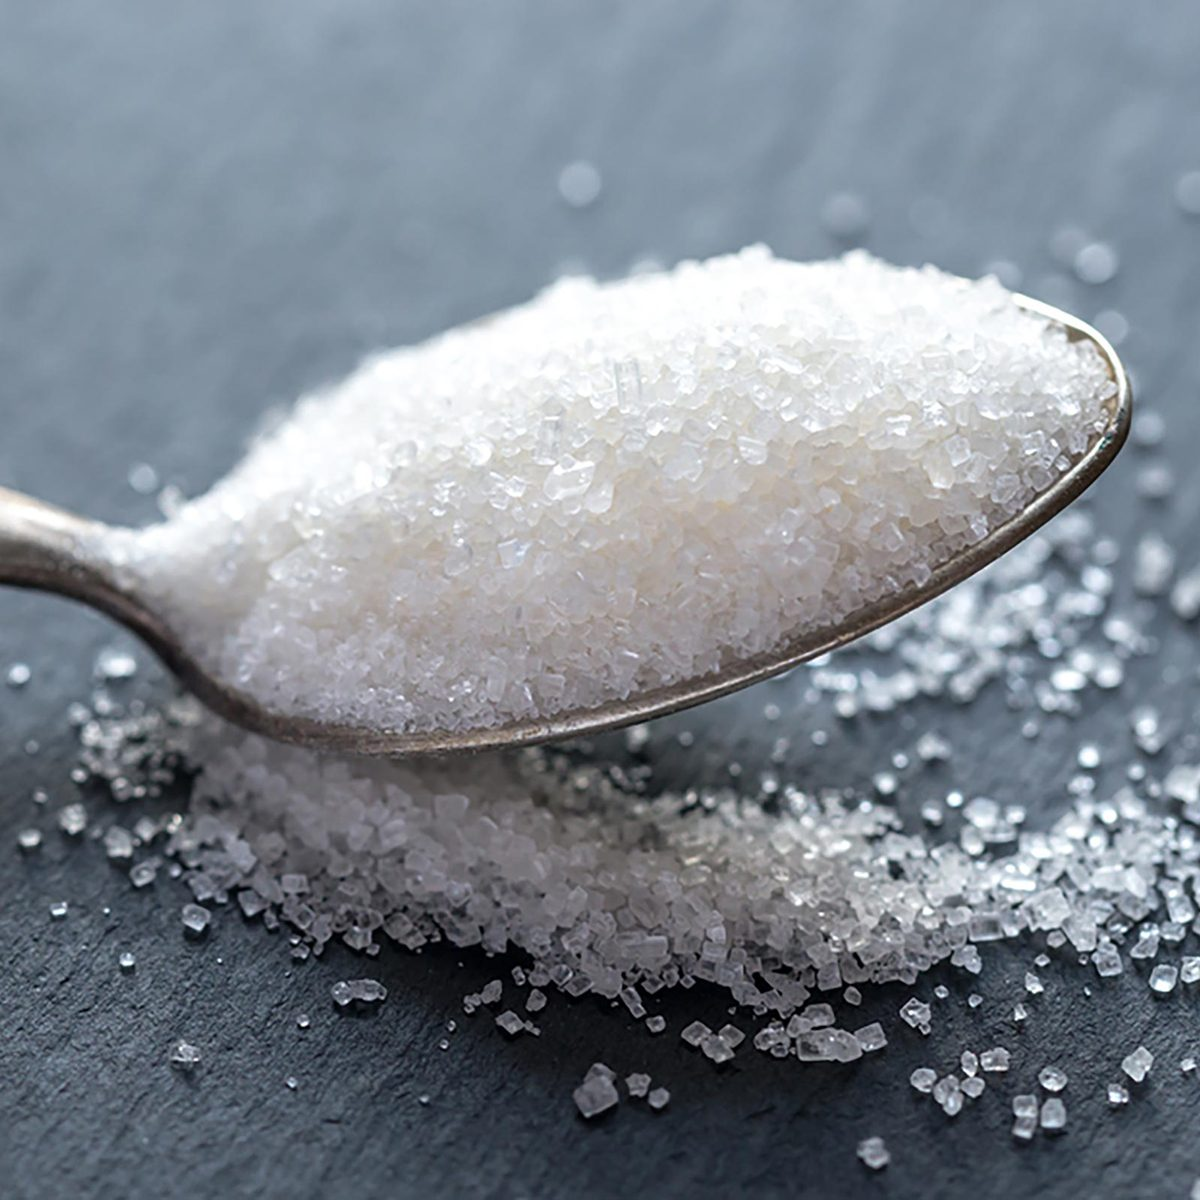 Spoon filled with sugar